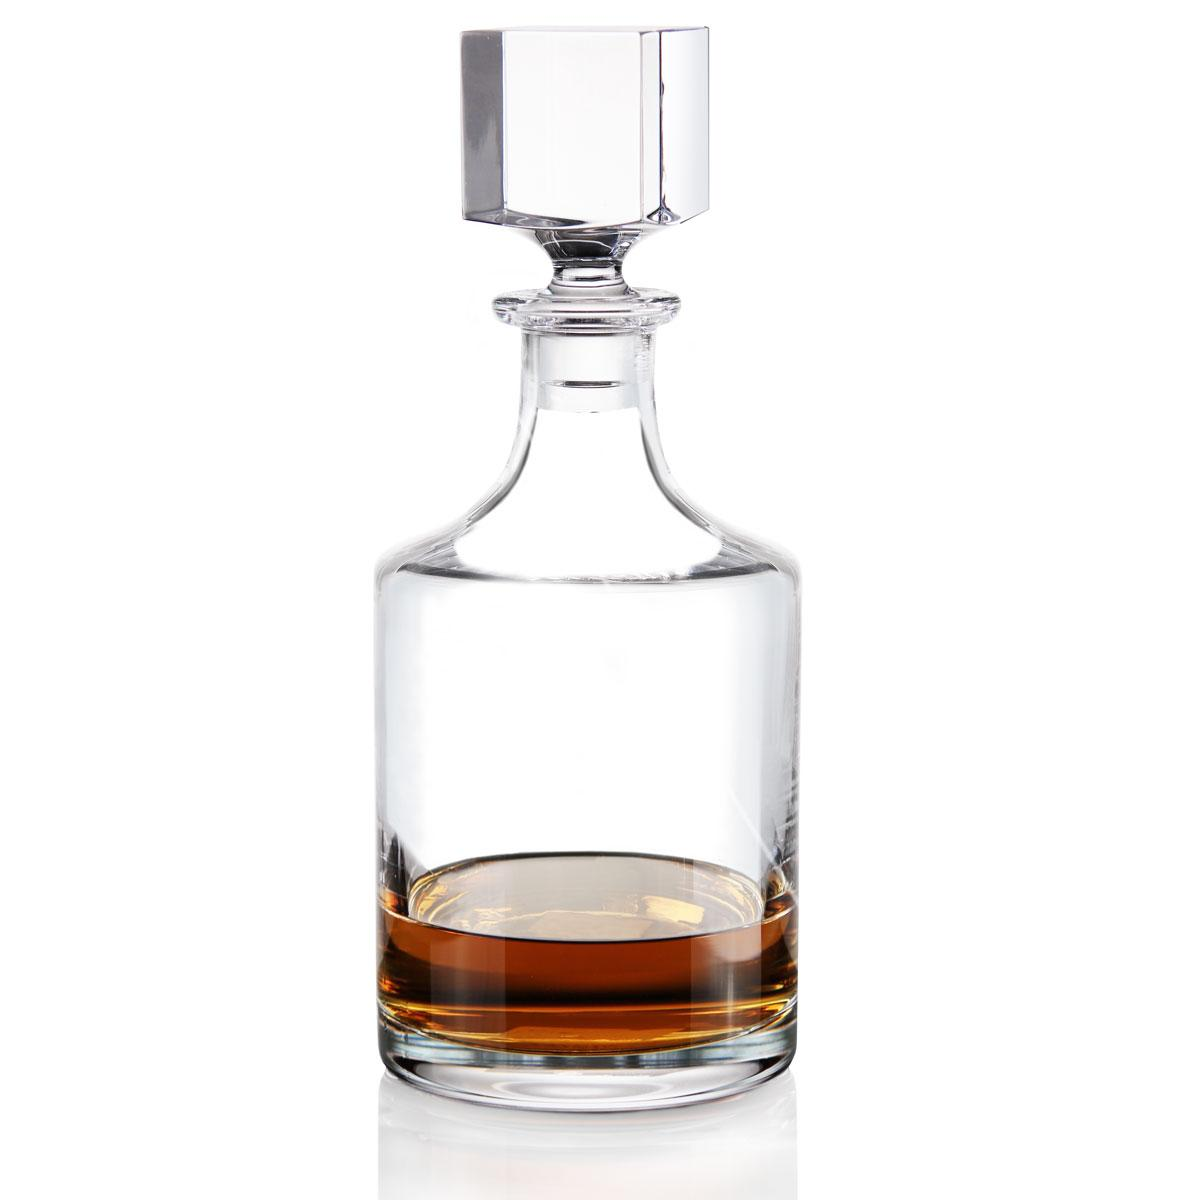 Cashs Ireland, Grand Cru Handmade Crystal Whiskey Decanter